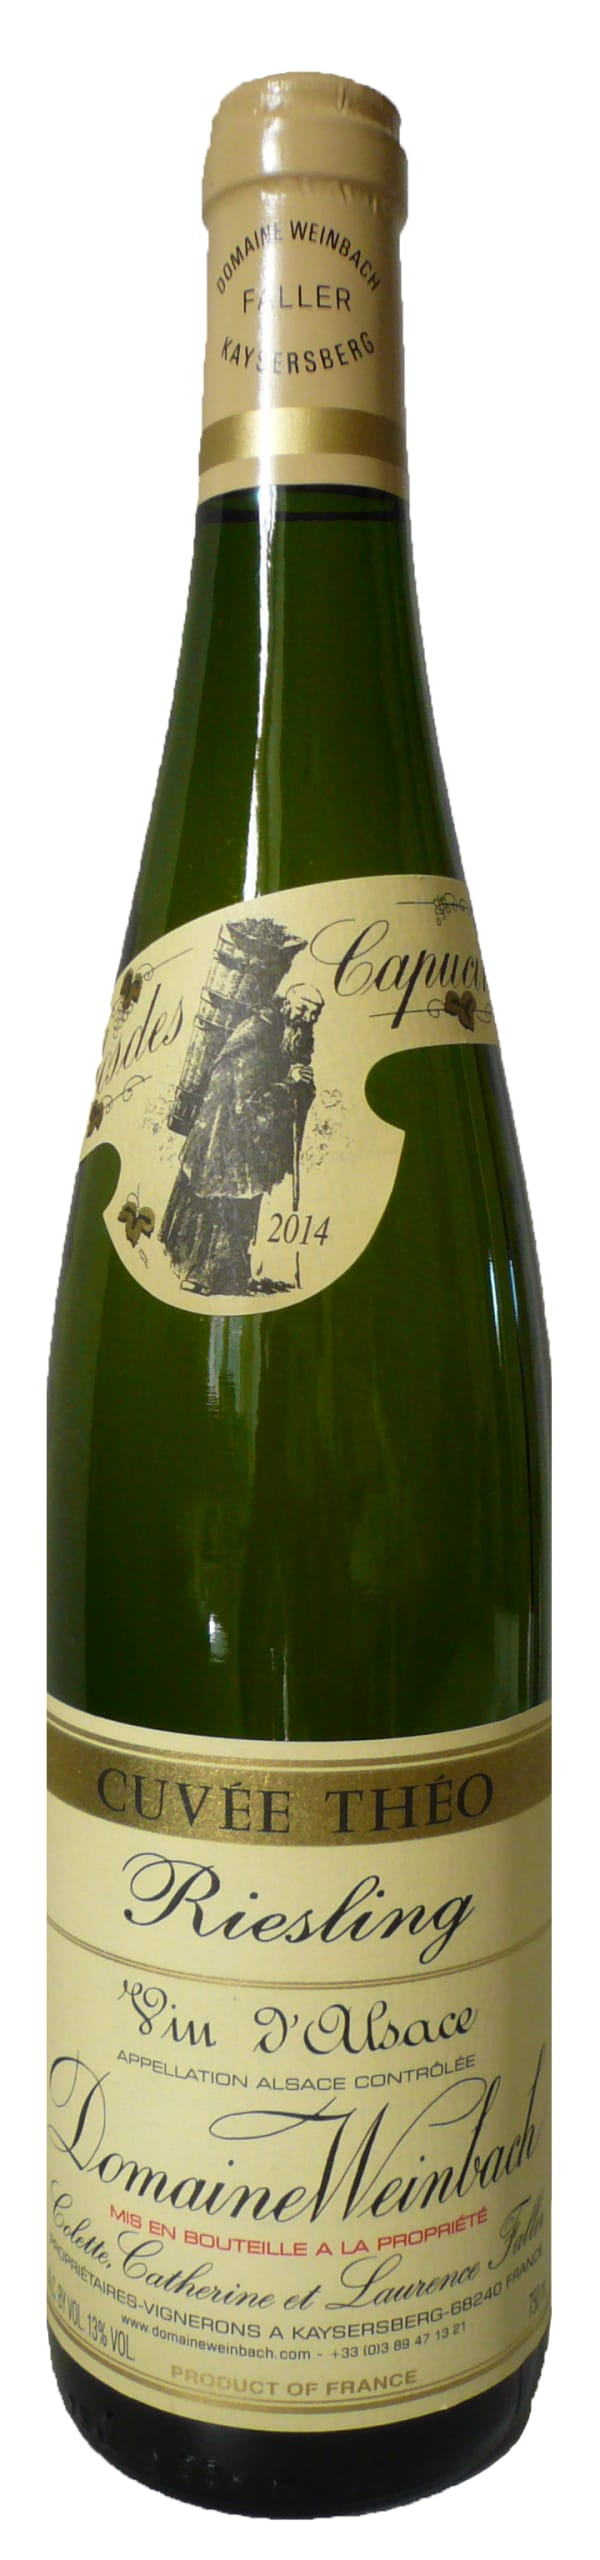 Domaine Weinbach Cuvée Théo Riesling 2014